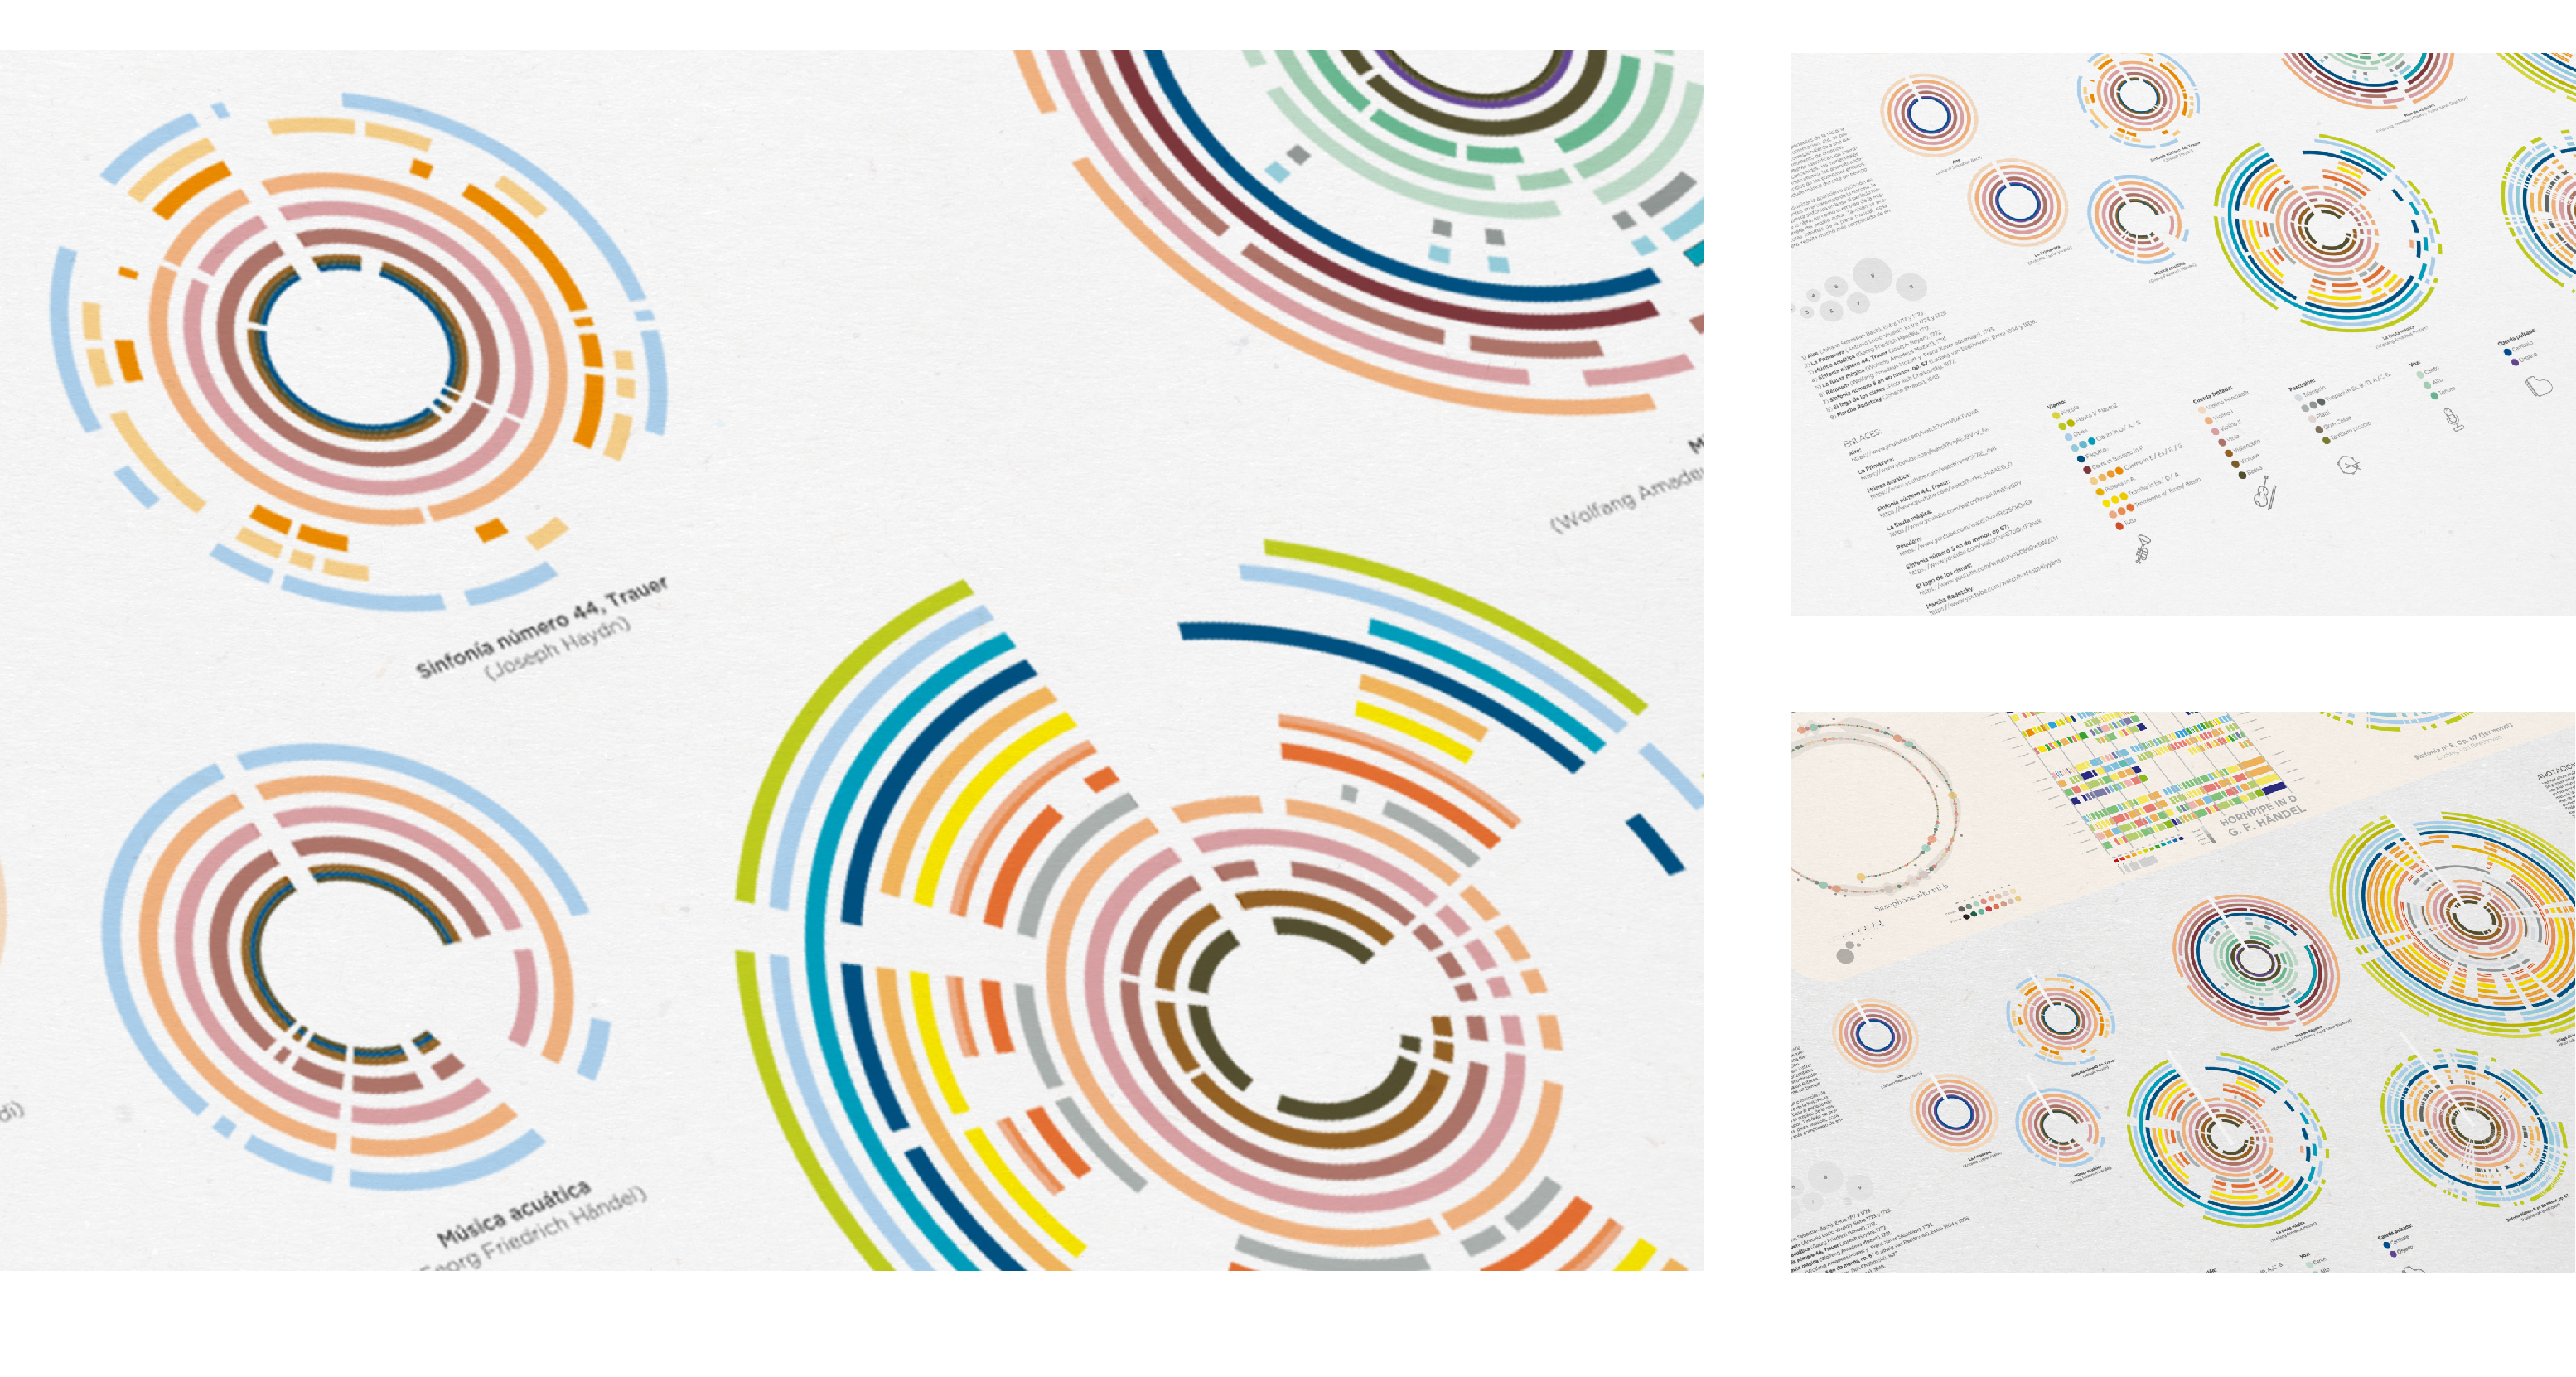 Data visualizations about music, photo of the printed systematic study showing the music trends trough history